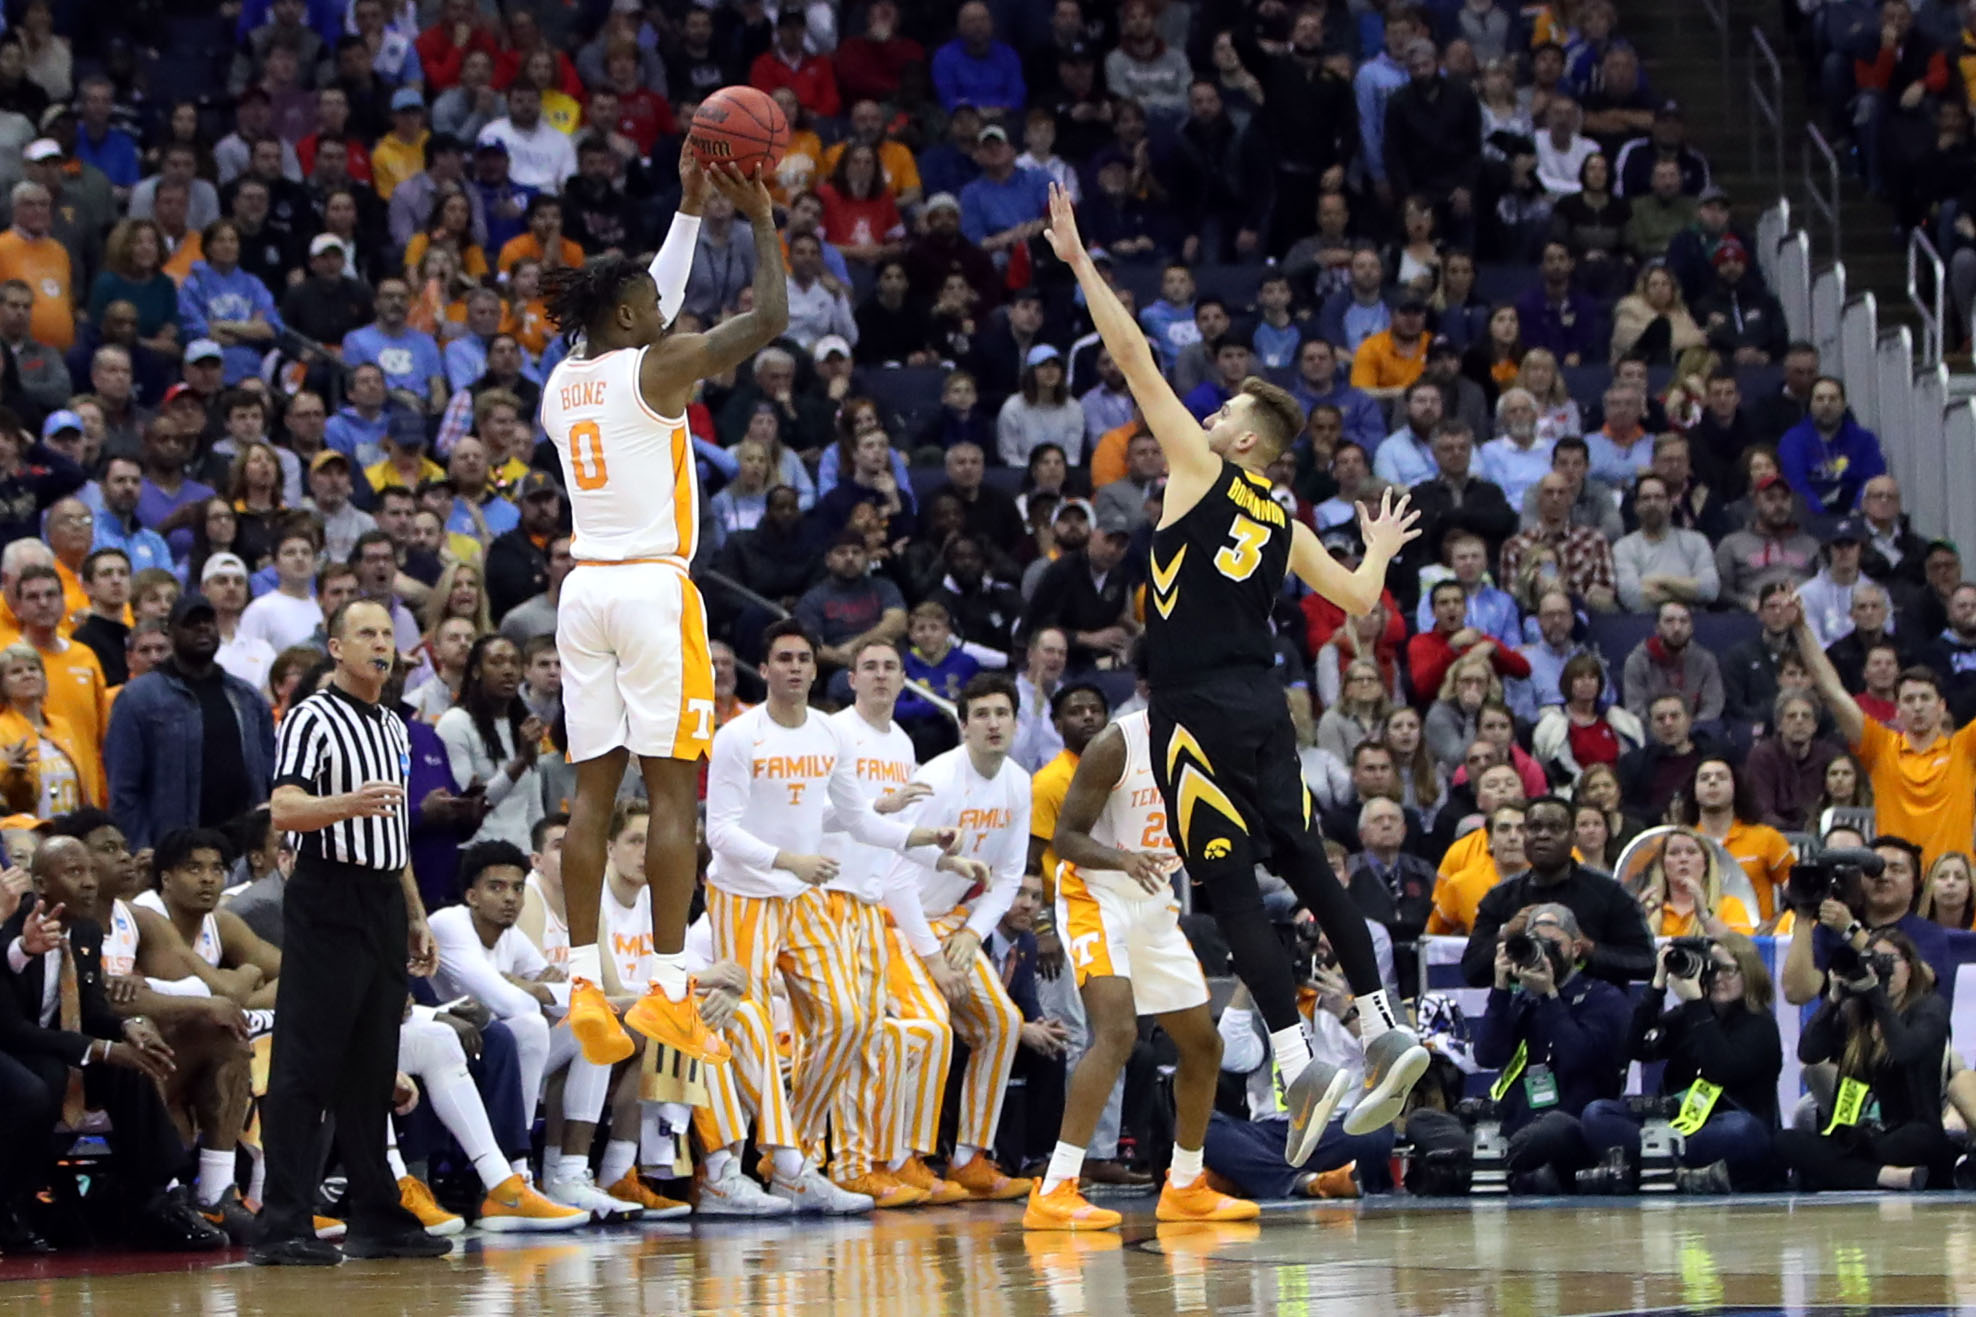 Tennessee vs. Iowa: How Vols survived biggest collapse in March Madness history